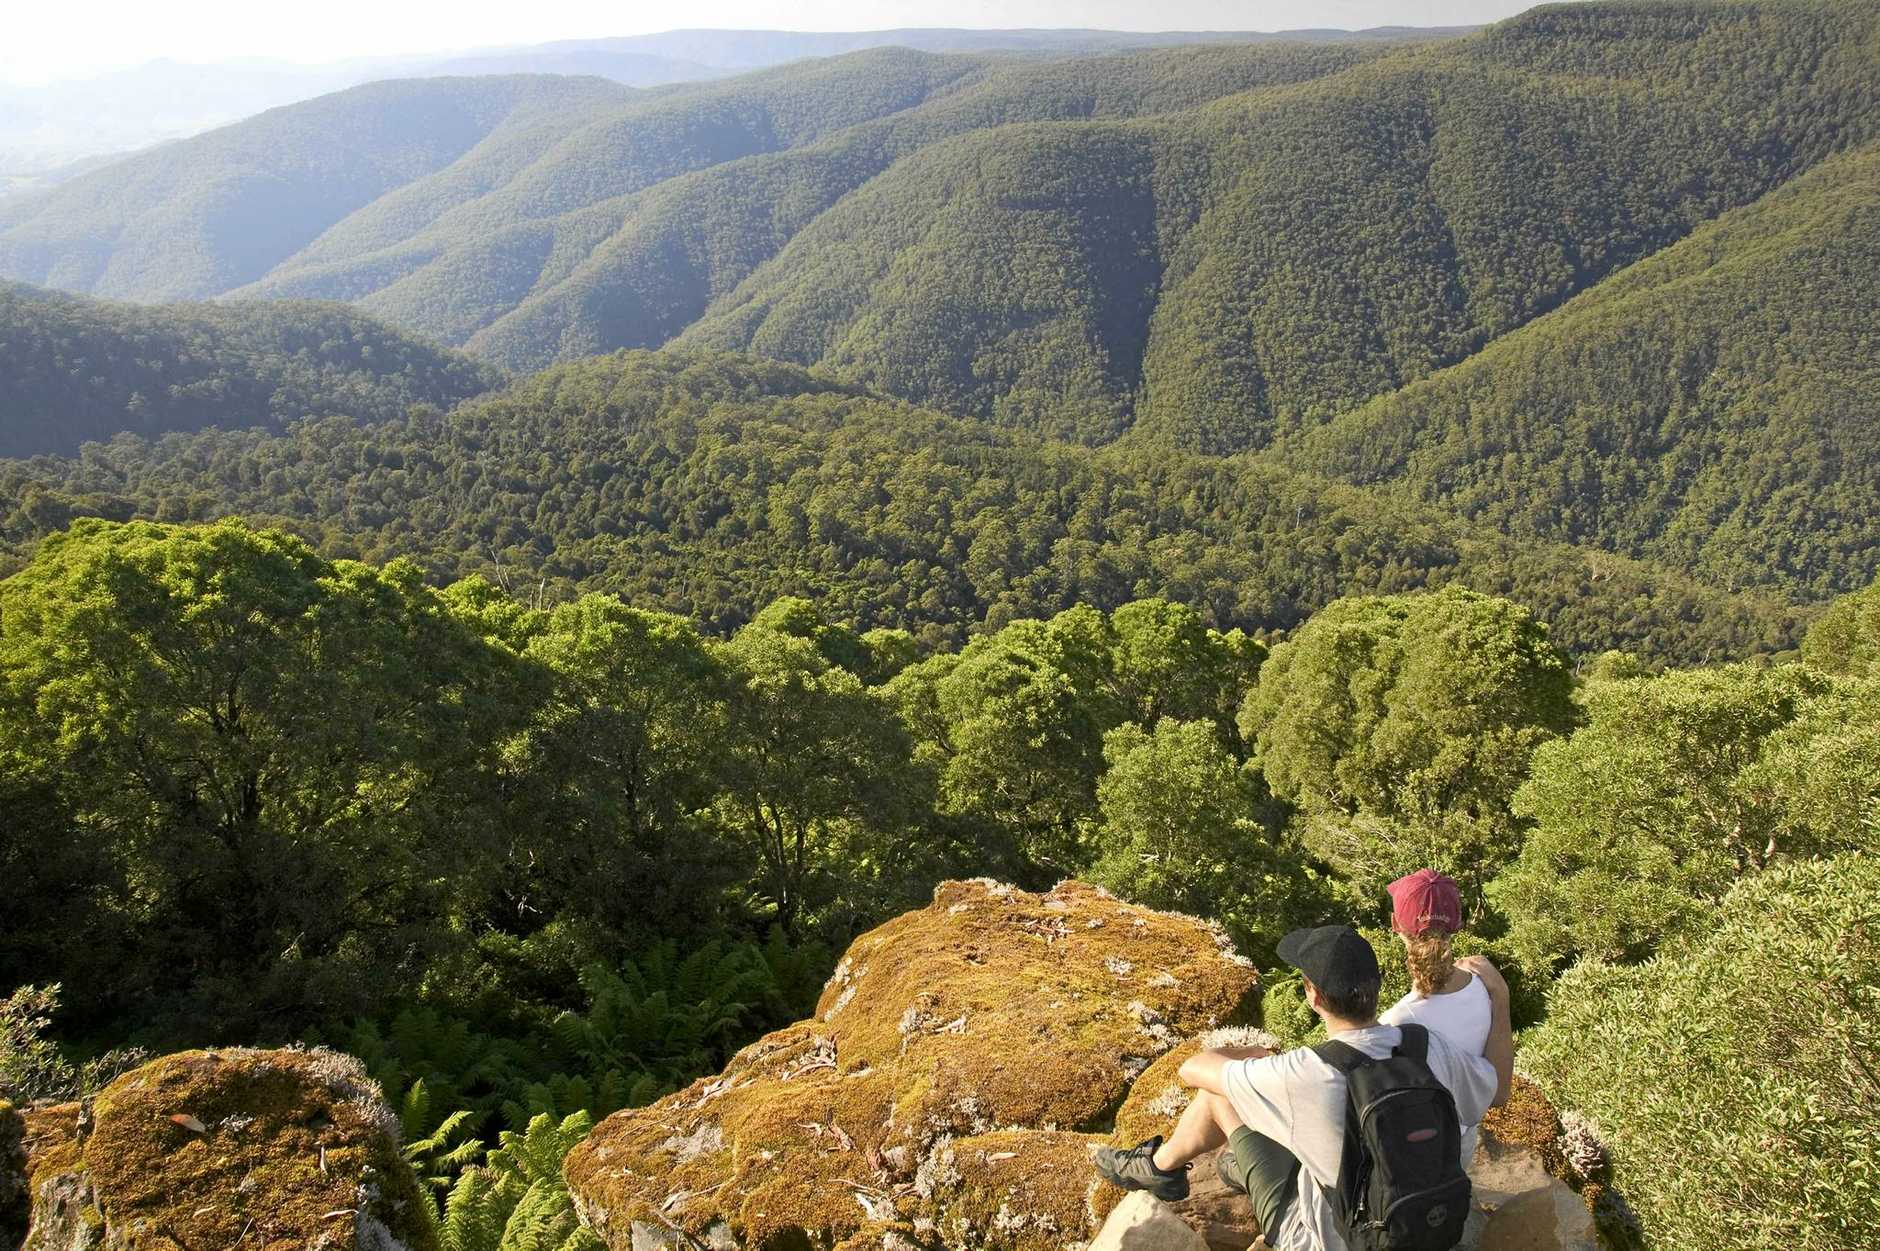 A couple enjoys the view at Thunderbolts Lookout at Barrington Tops National Park.